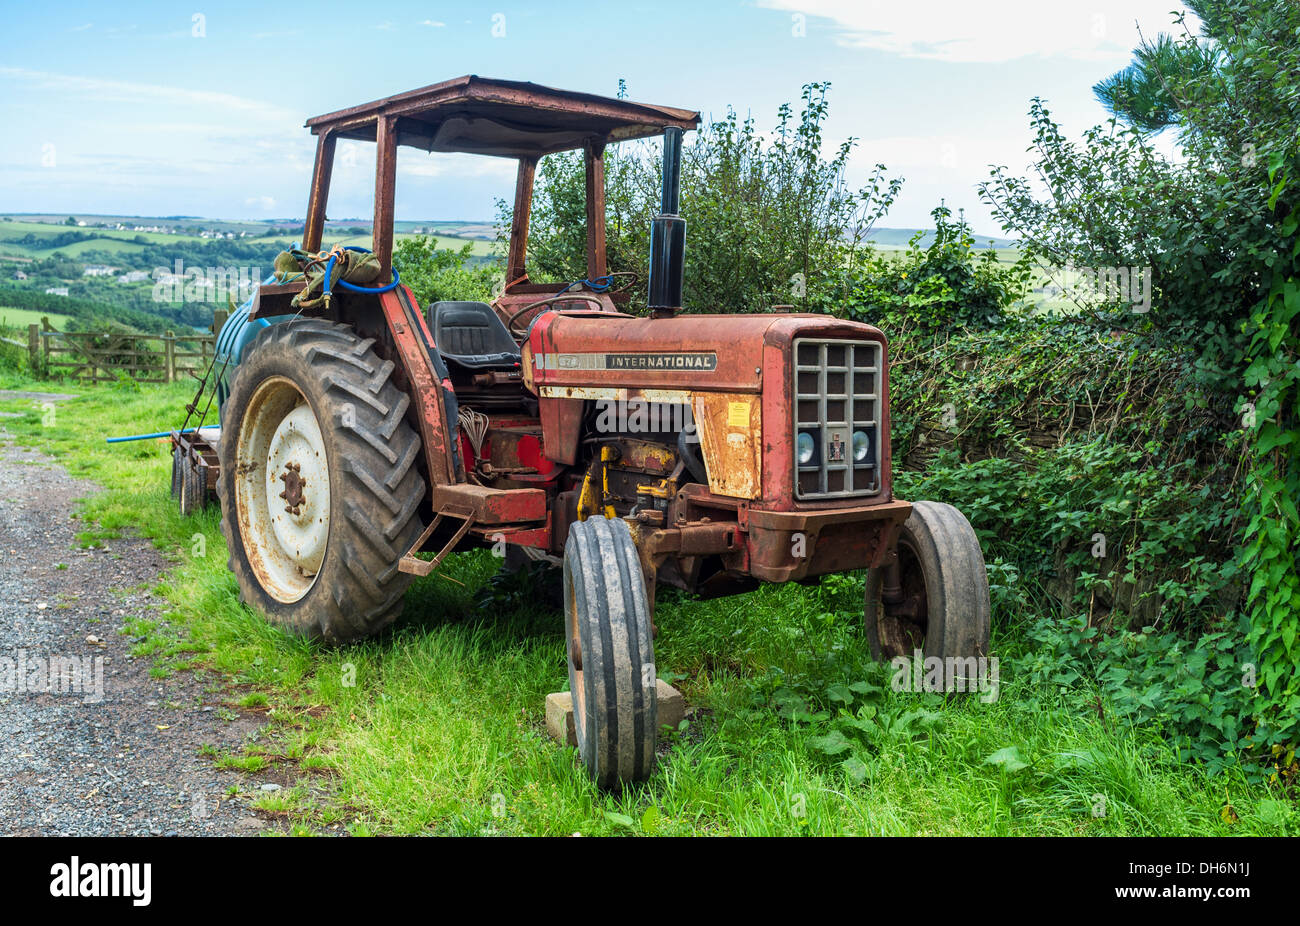 An Old Slightly Rusty 574 International Farm Tractor In